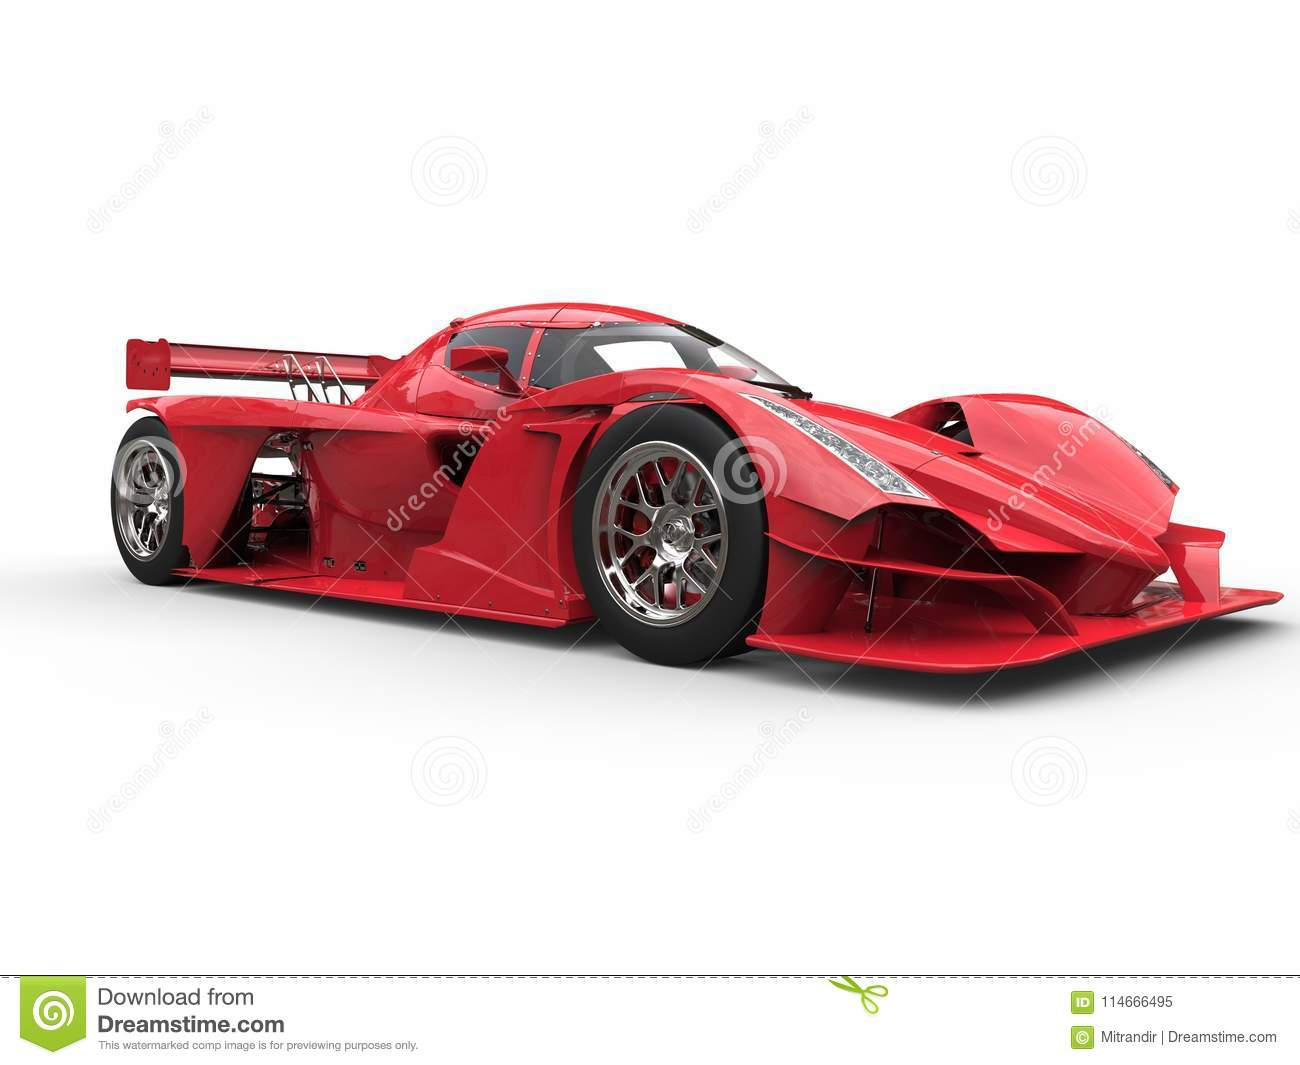 Angry red super race car - beauty shot